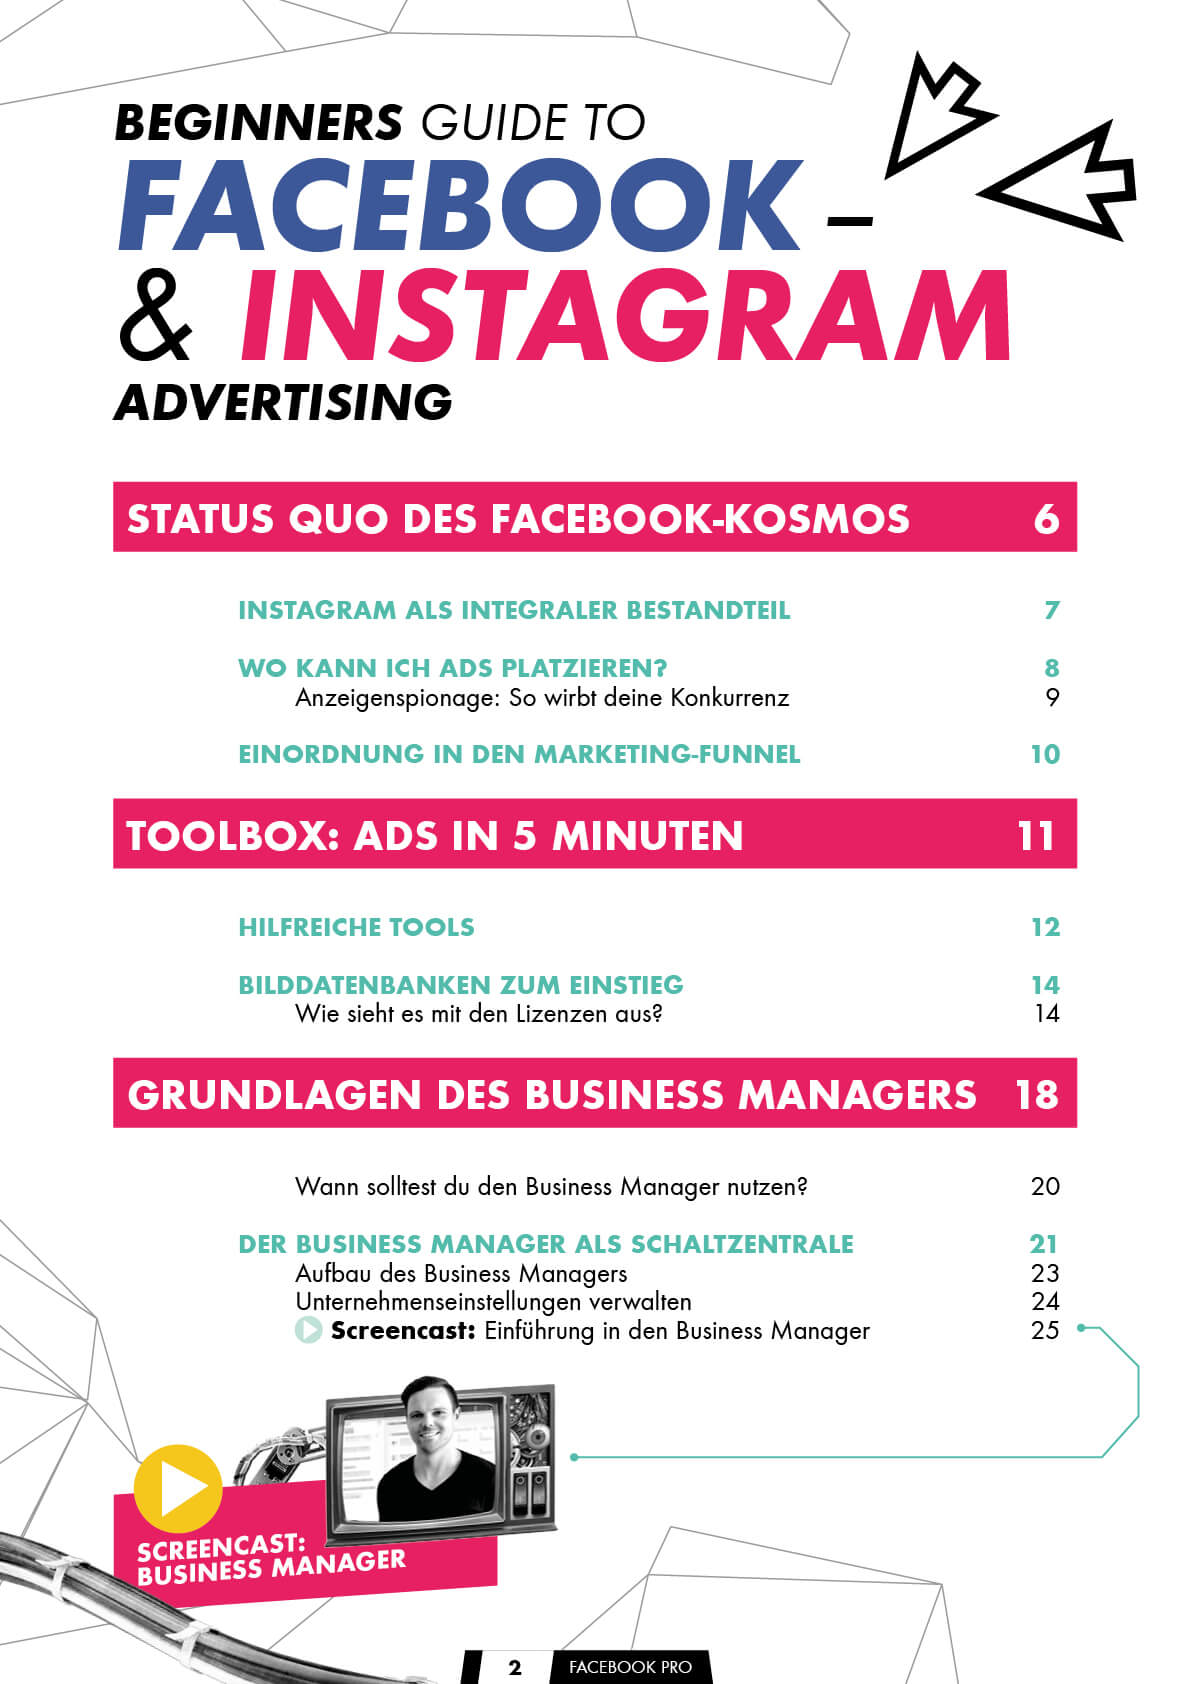 Beginners Guide to Facebook & Instagram Advertising 2020